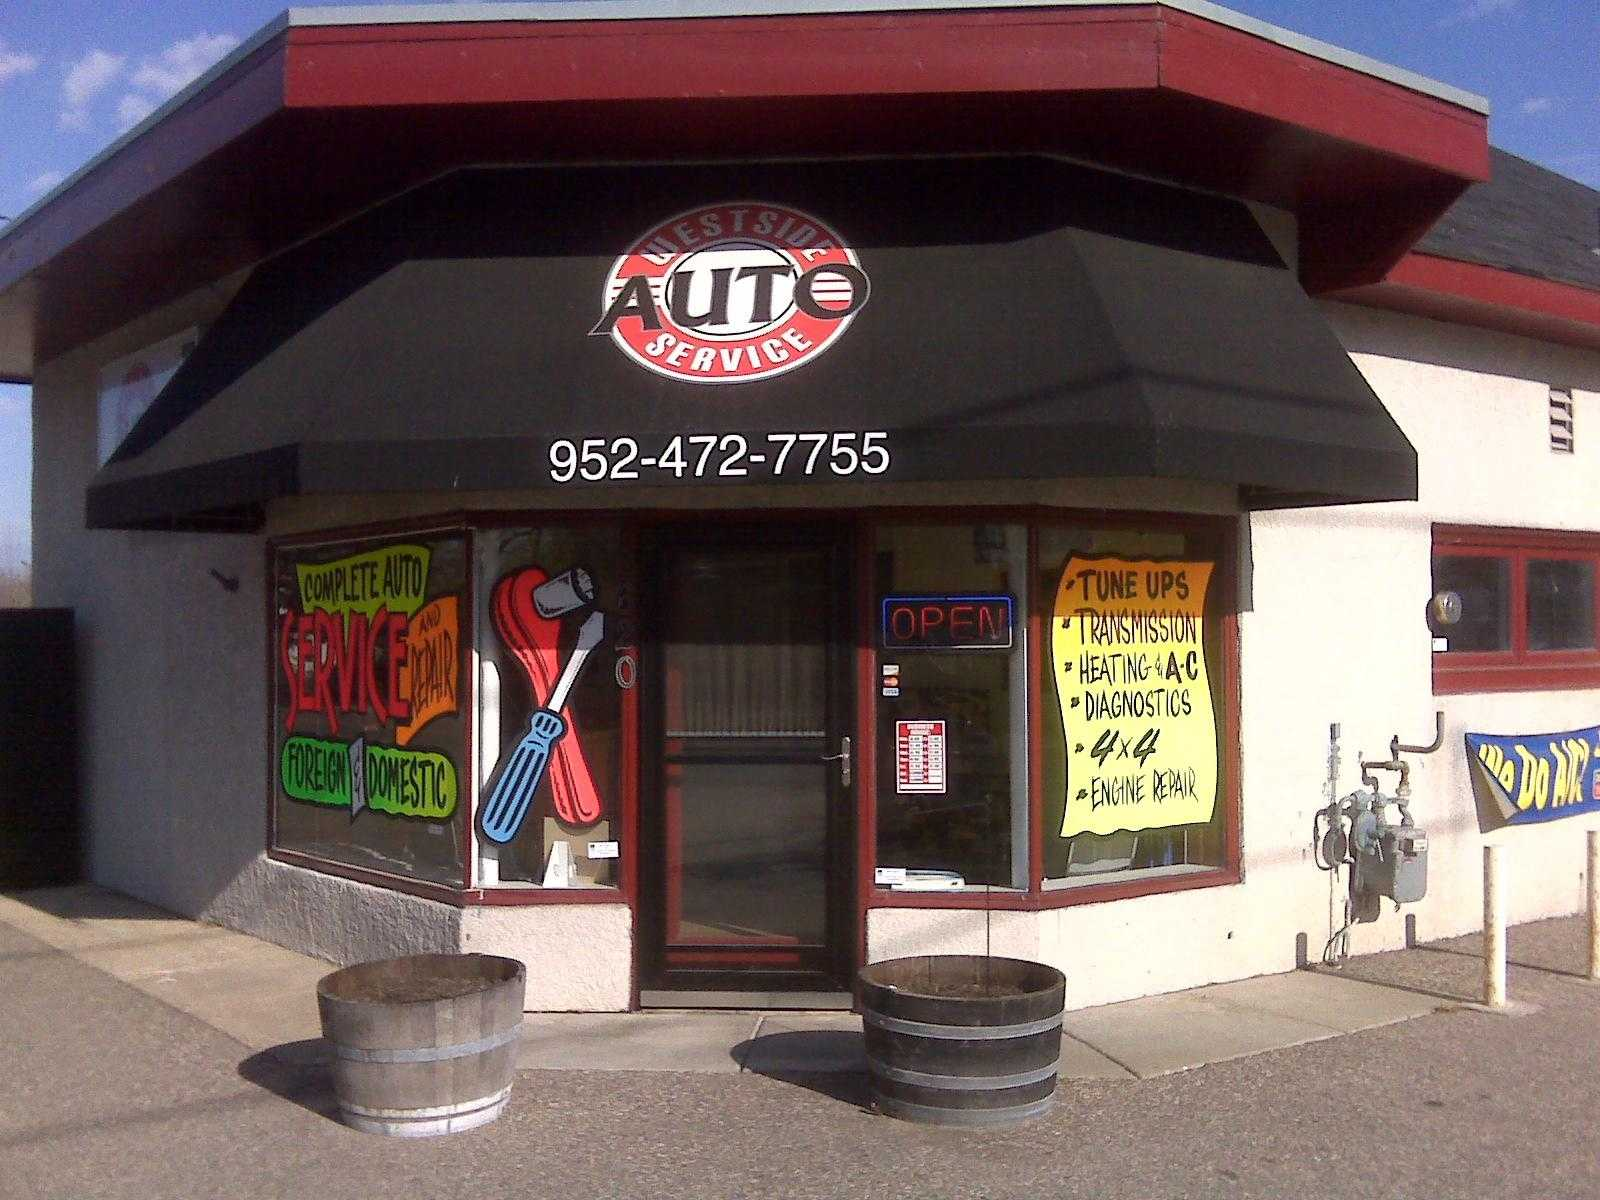 View of Weside Auto Service